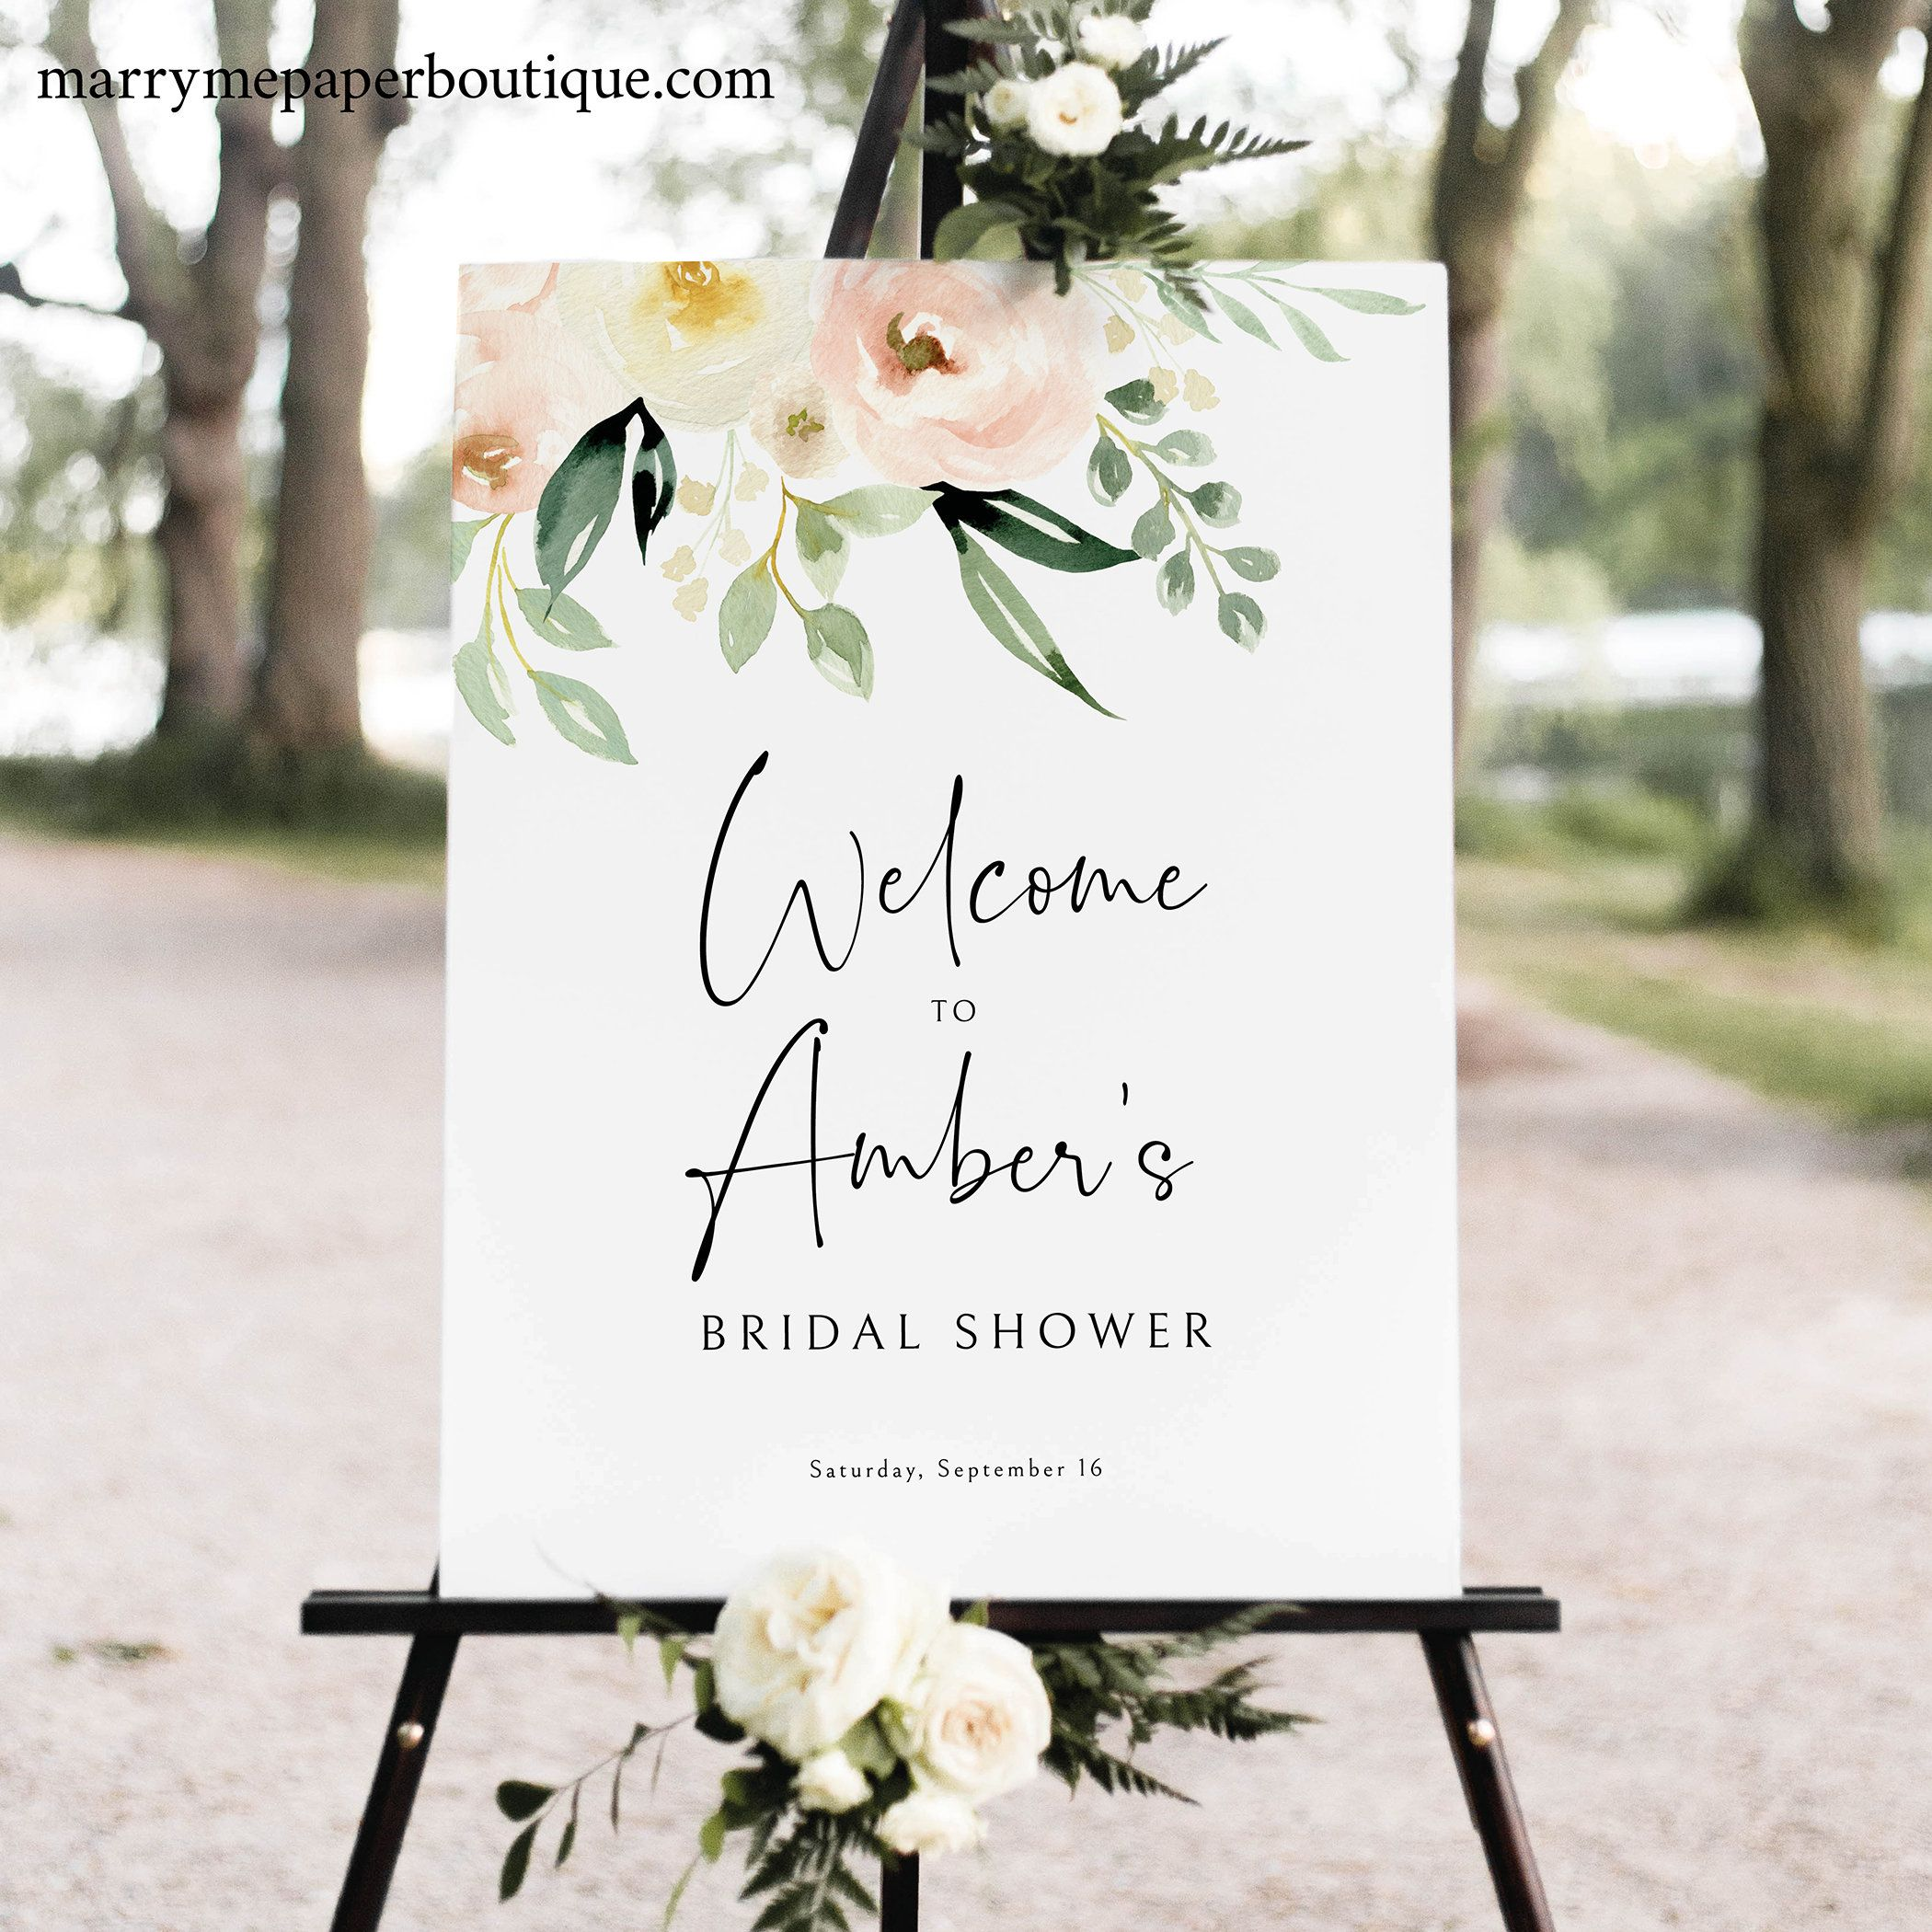 Bridal Shower Welcome Sign Template Printable Sign Templett Etsy Bridal Shower Welcome Sign Sign Templates Wedding Welcome Signs Bridal shower welcome sign template